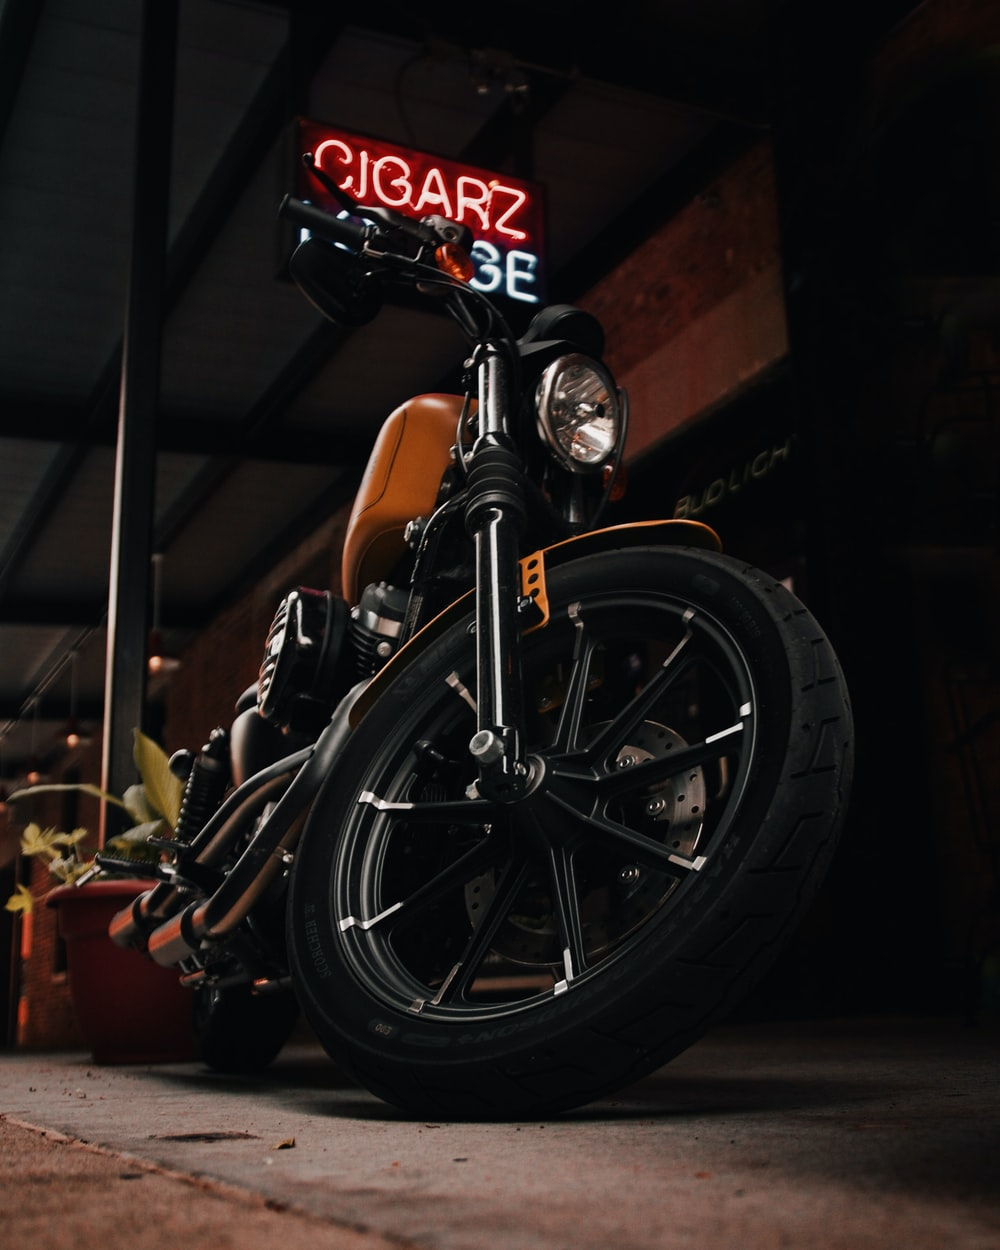 low-angle photography of cruiser motorcycle